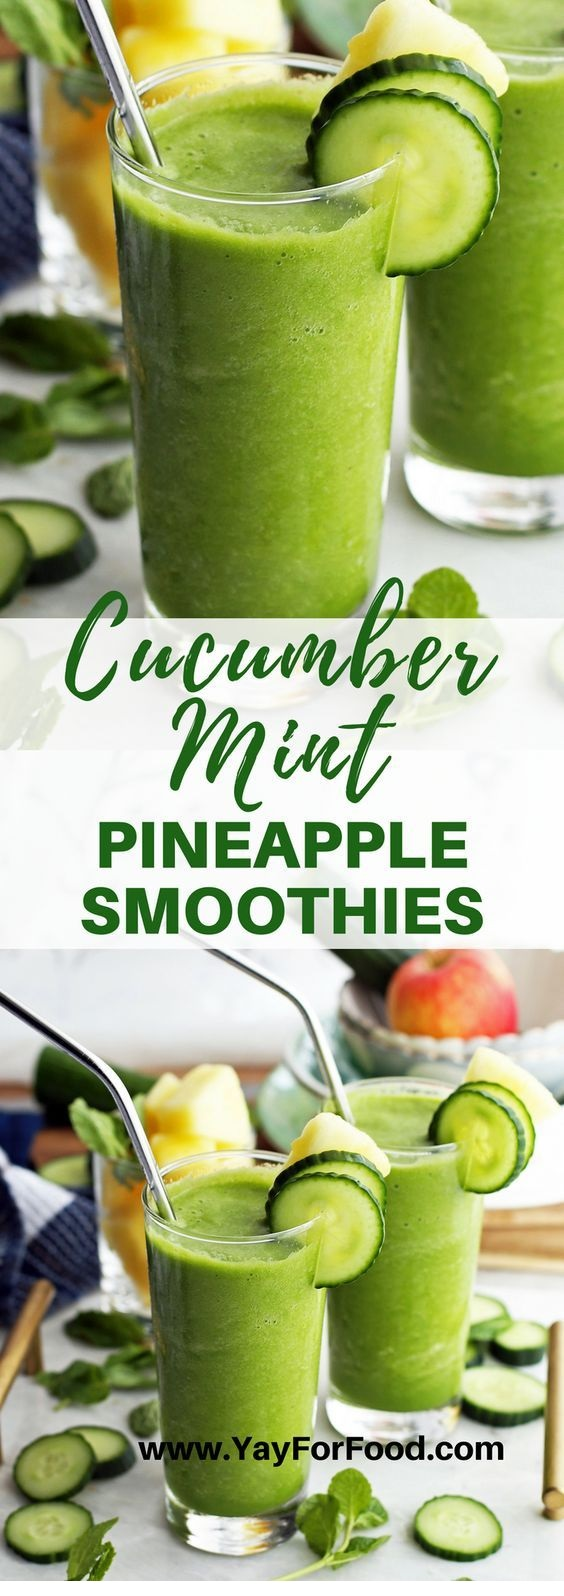 Cucumber Mint Pineapple Smoothie